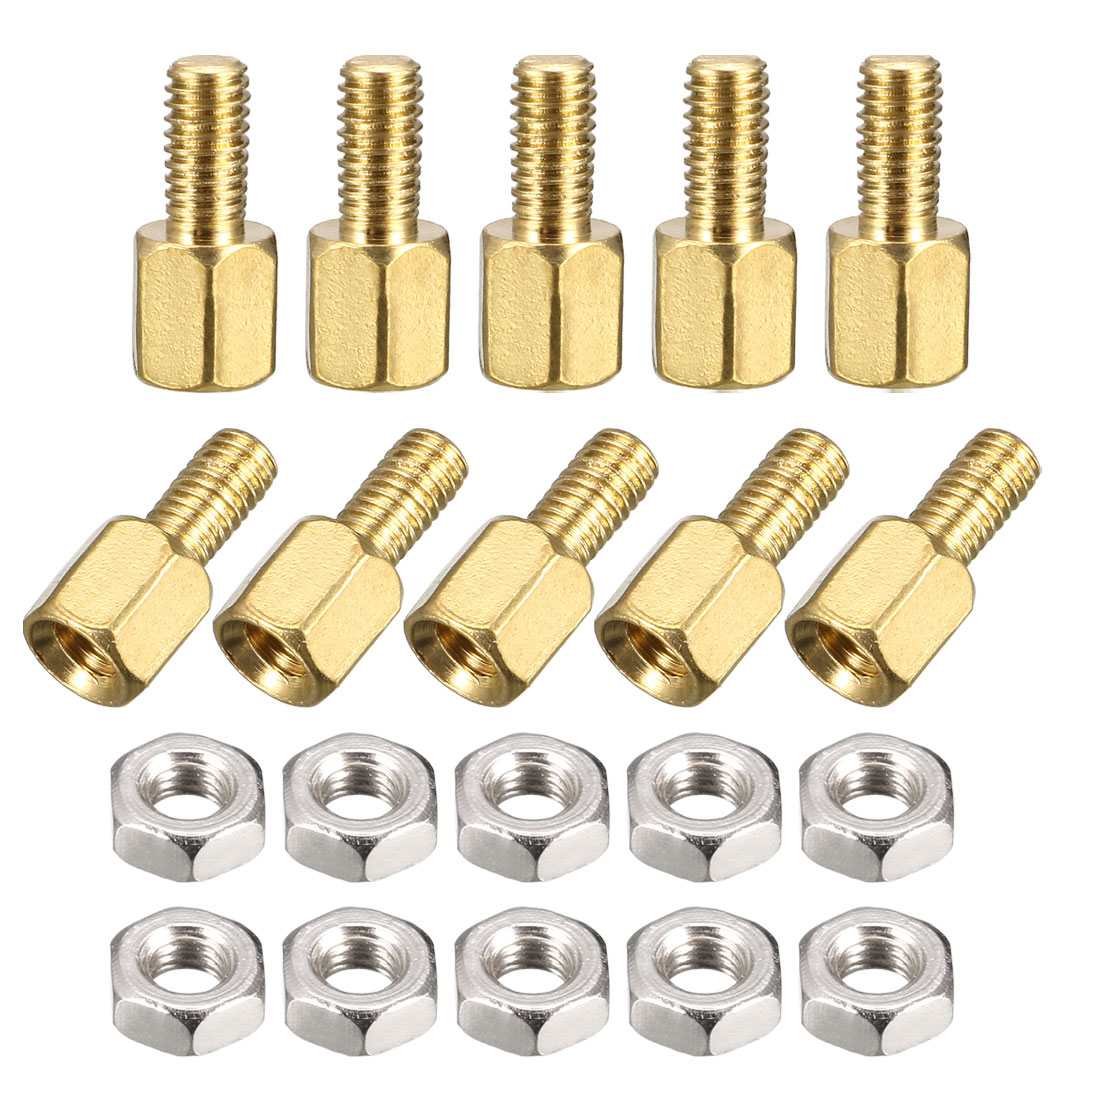 5mm Body Long M3x6mm Male to Female Brass Pillar Standoff Spacer 50Pcs